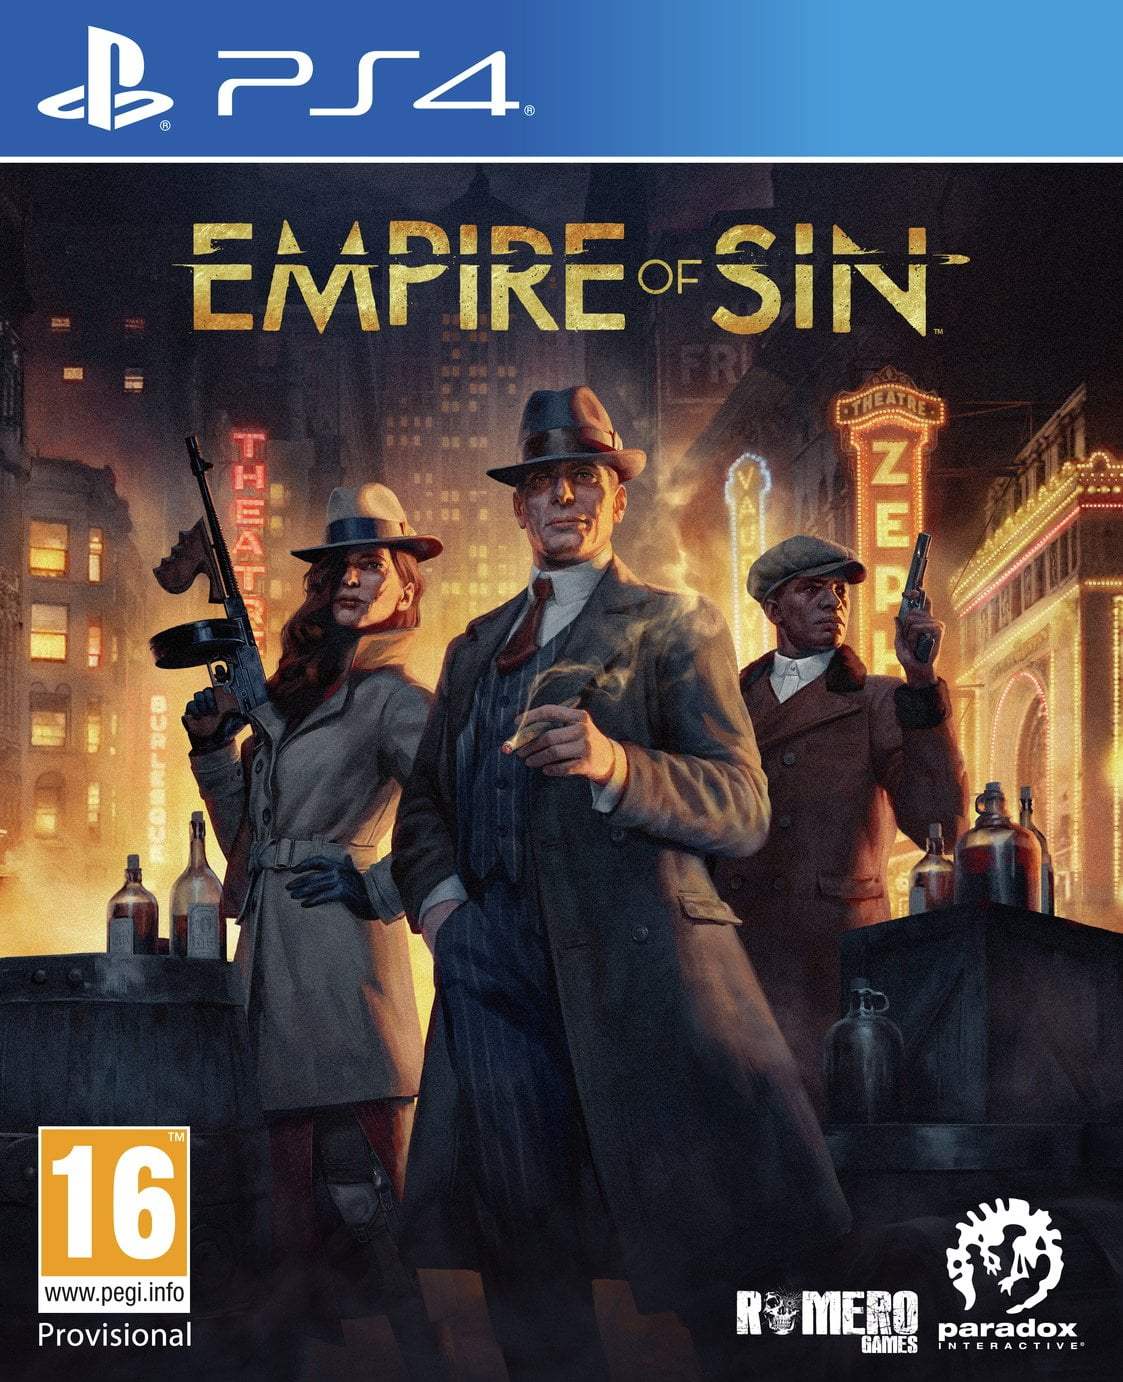 Empire of Sin PS4 Game Pre-Order